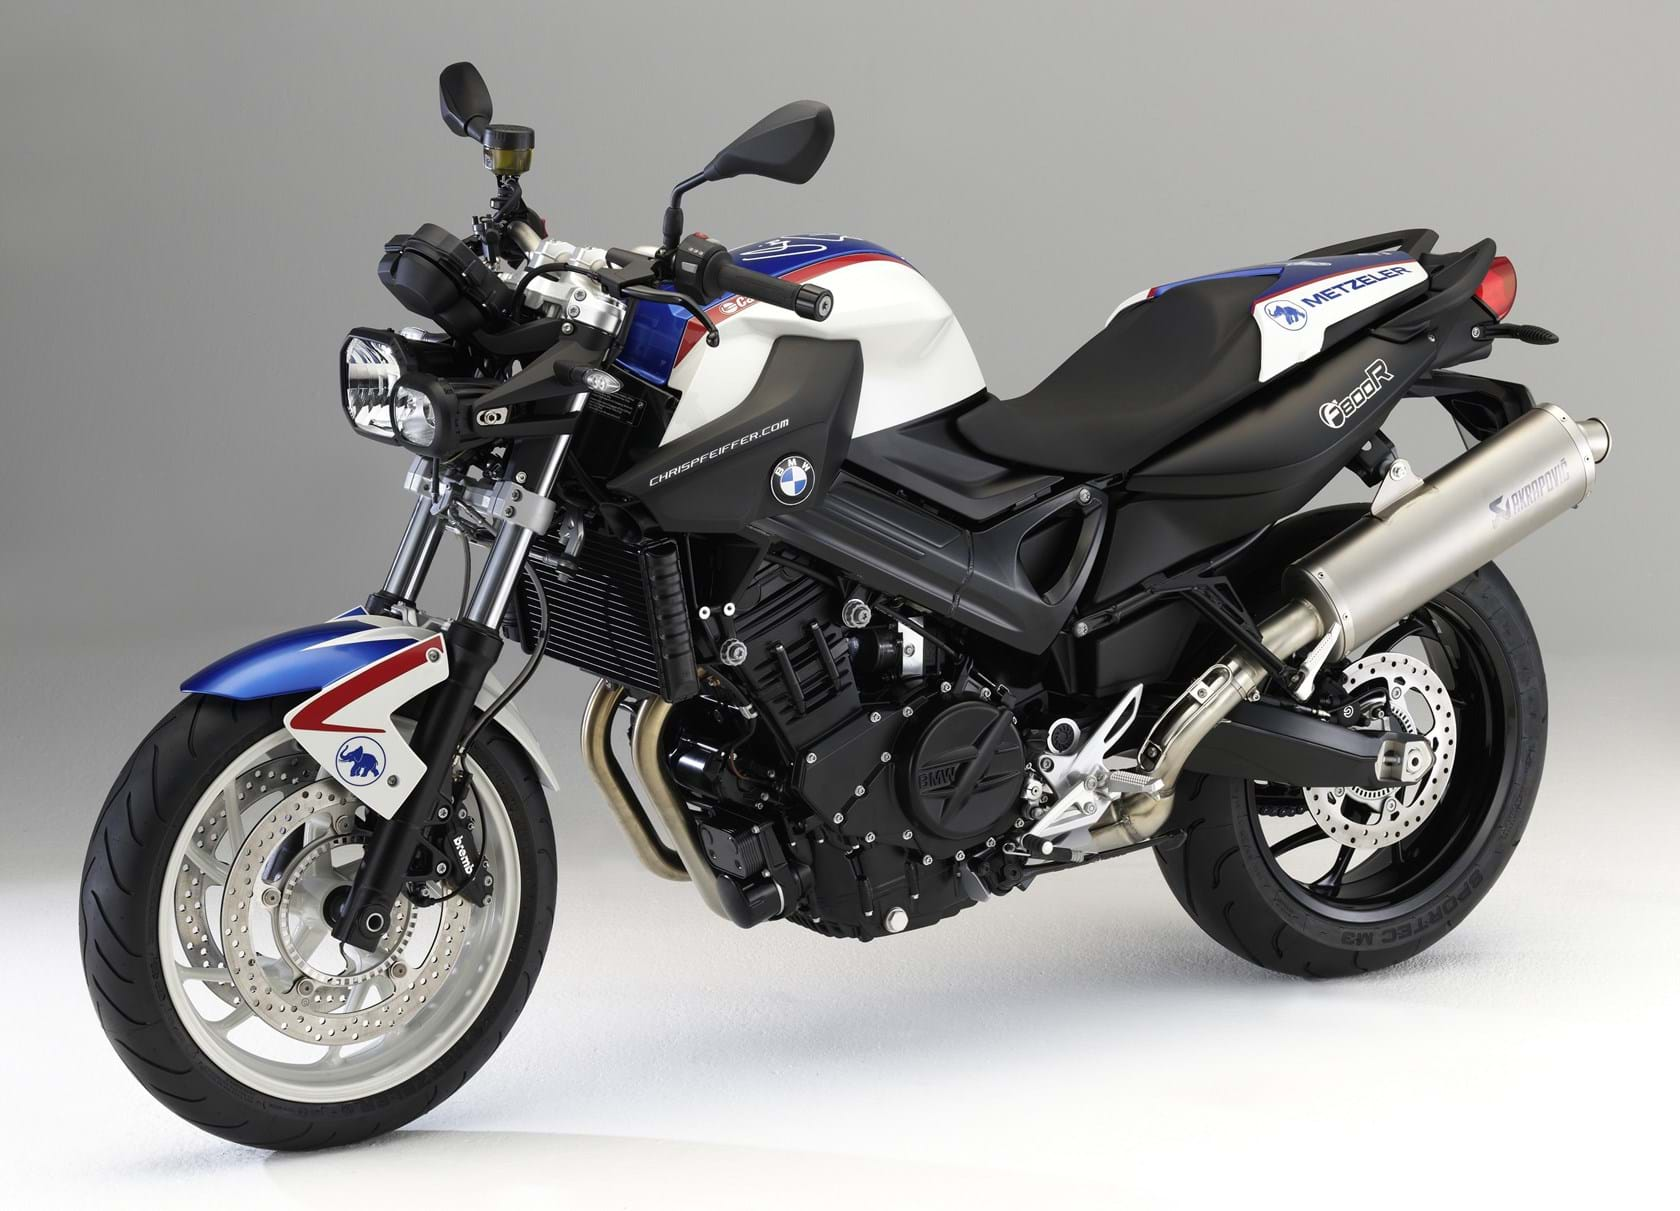 BMW F800R O For Sale Price Guide The Bike Market